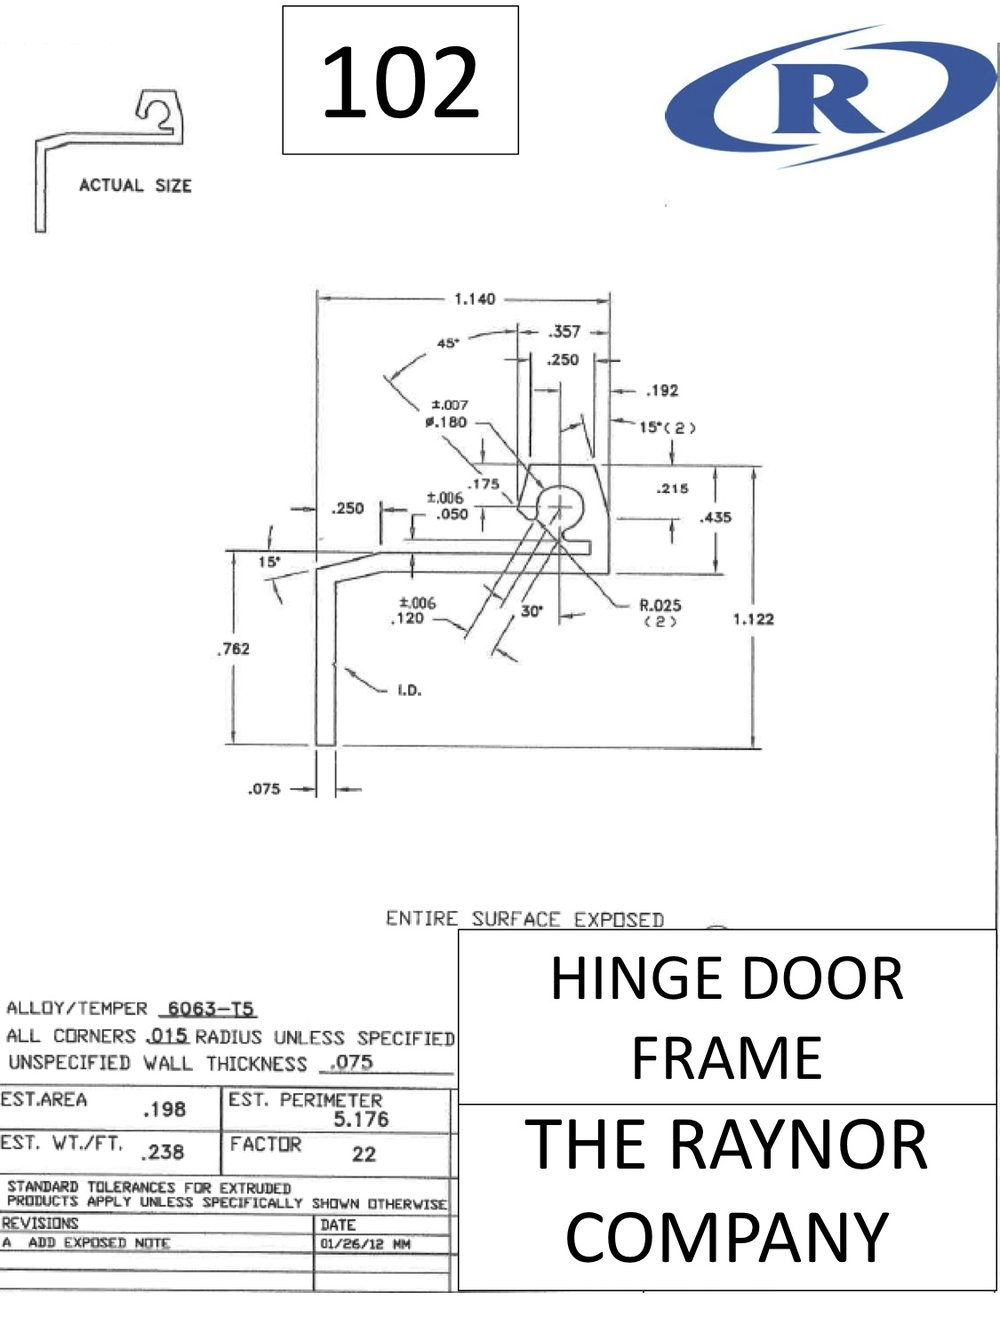 Hinge Door Frame